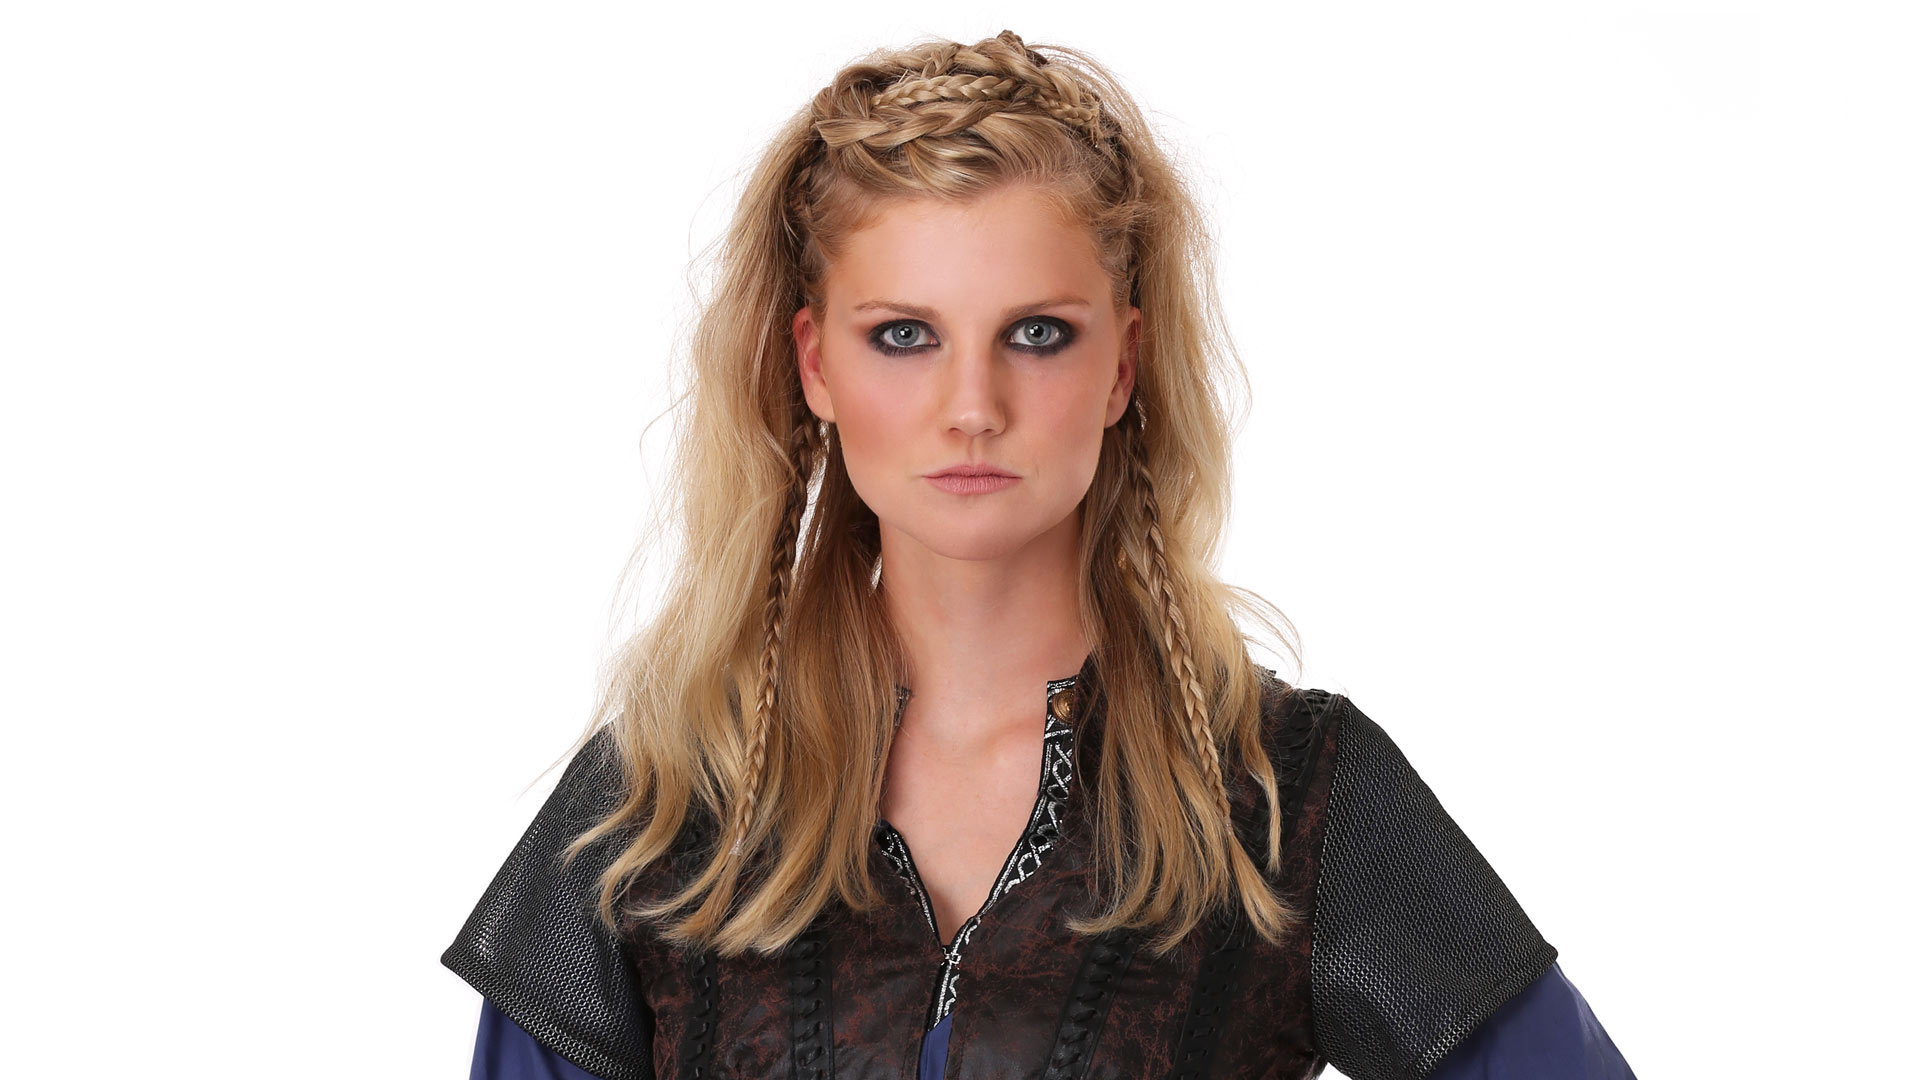 Lagertha's Completed Look